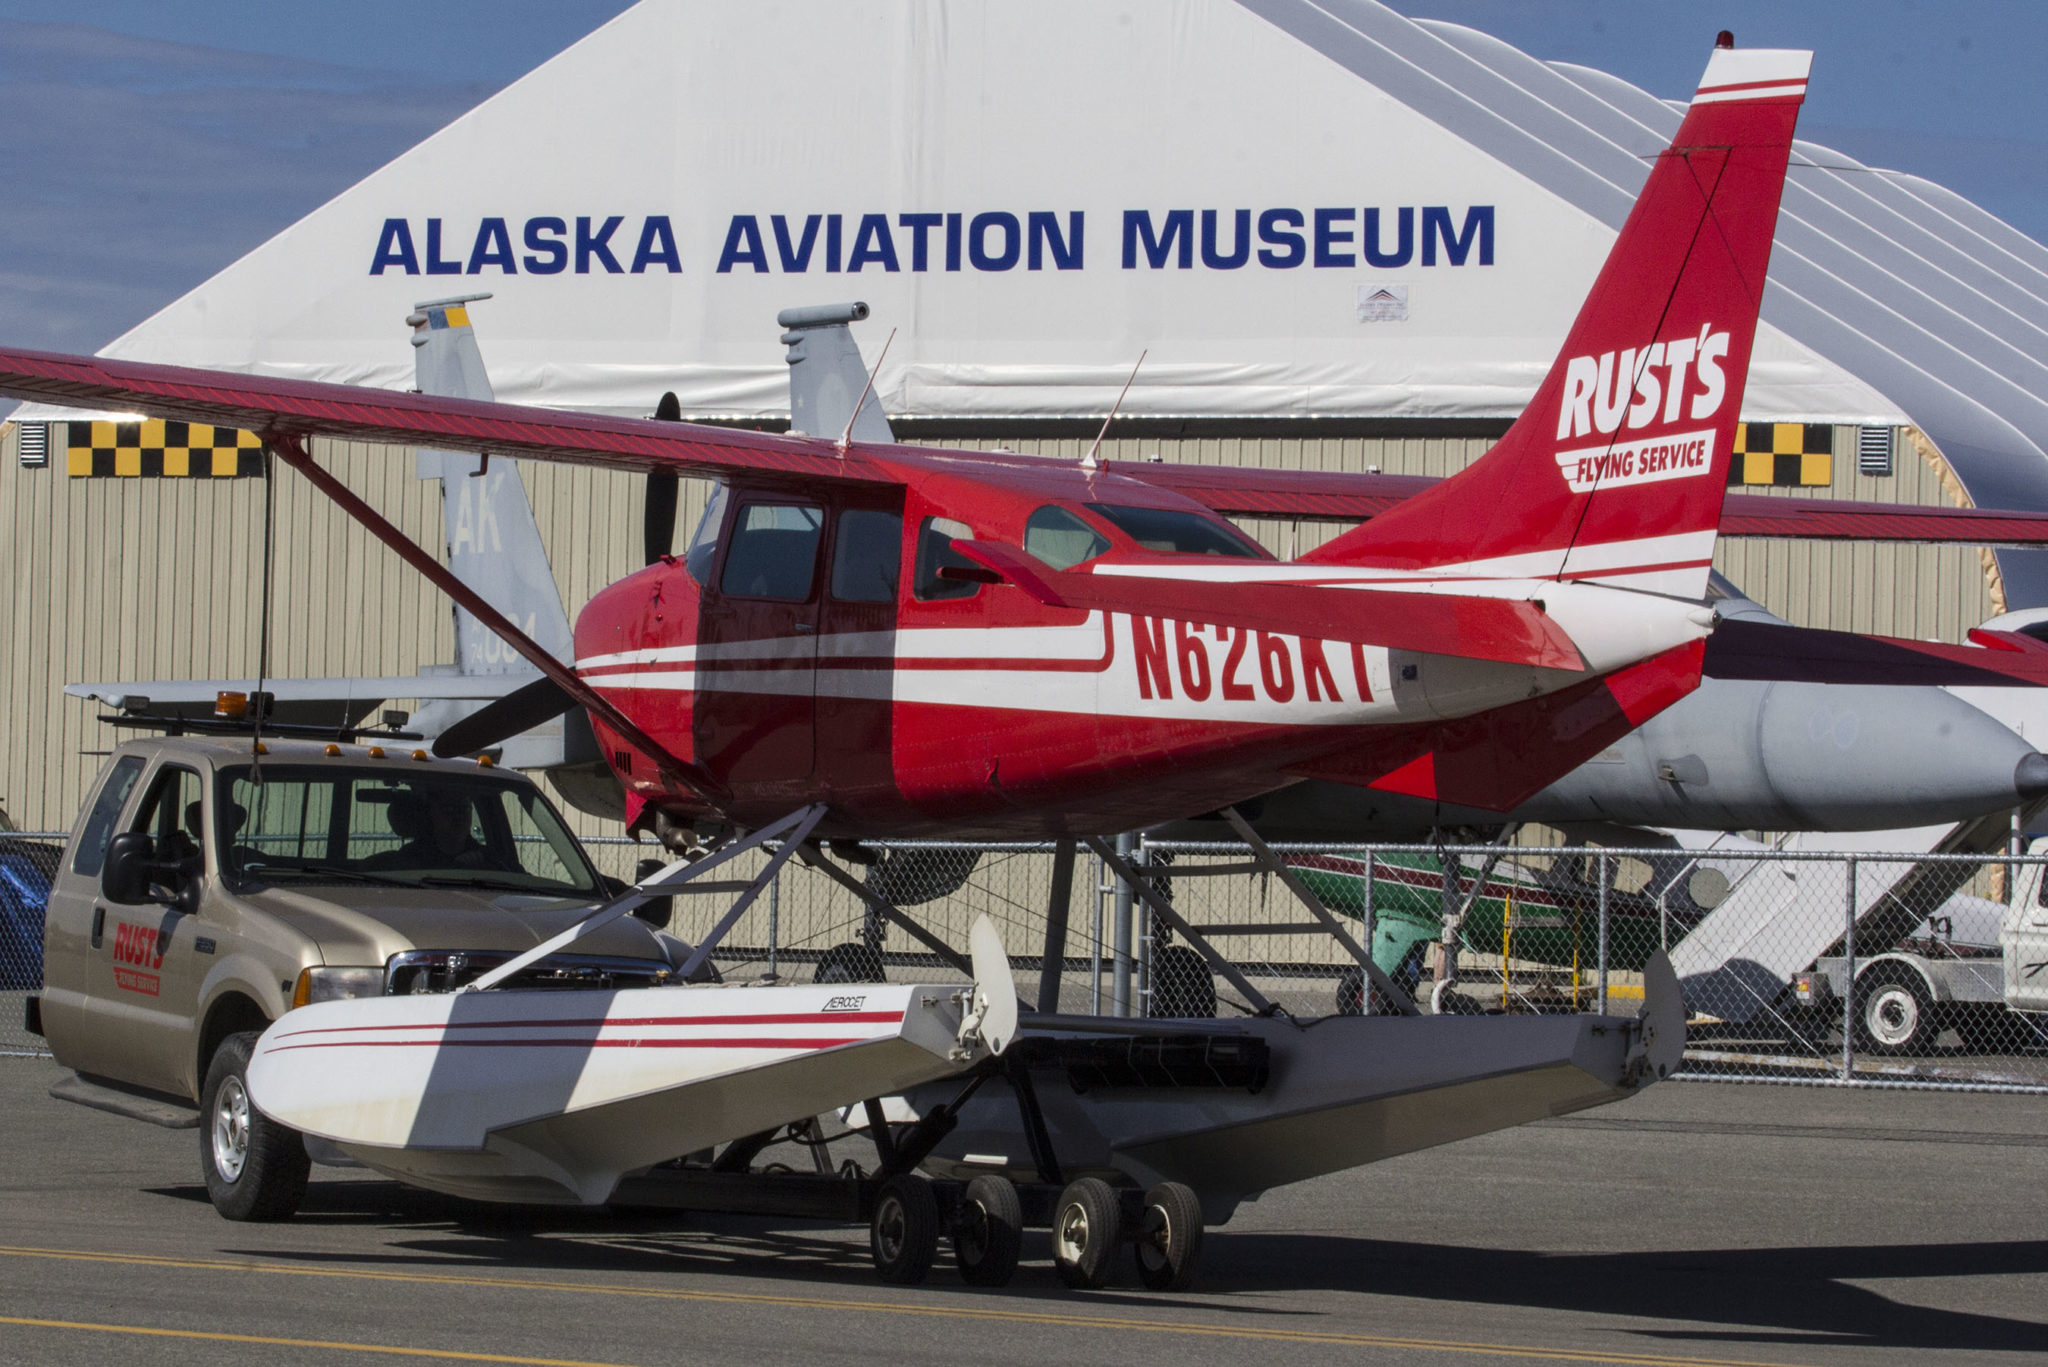 Alaska Aircraft Archives| Alaskafoto- Best Aircraft photography & aircraft portraits